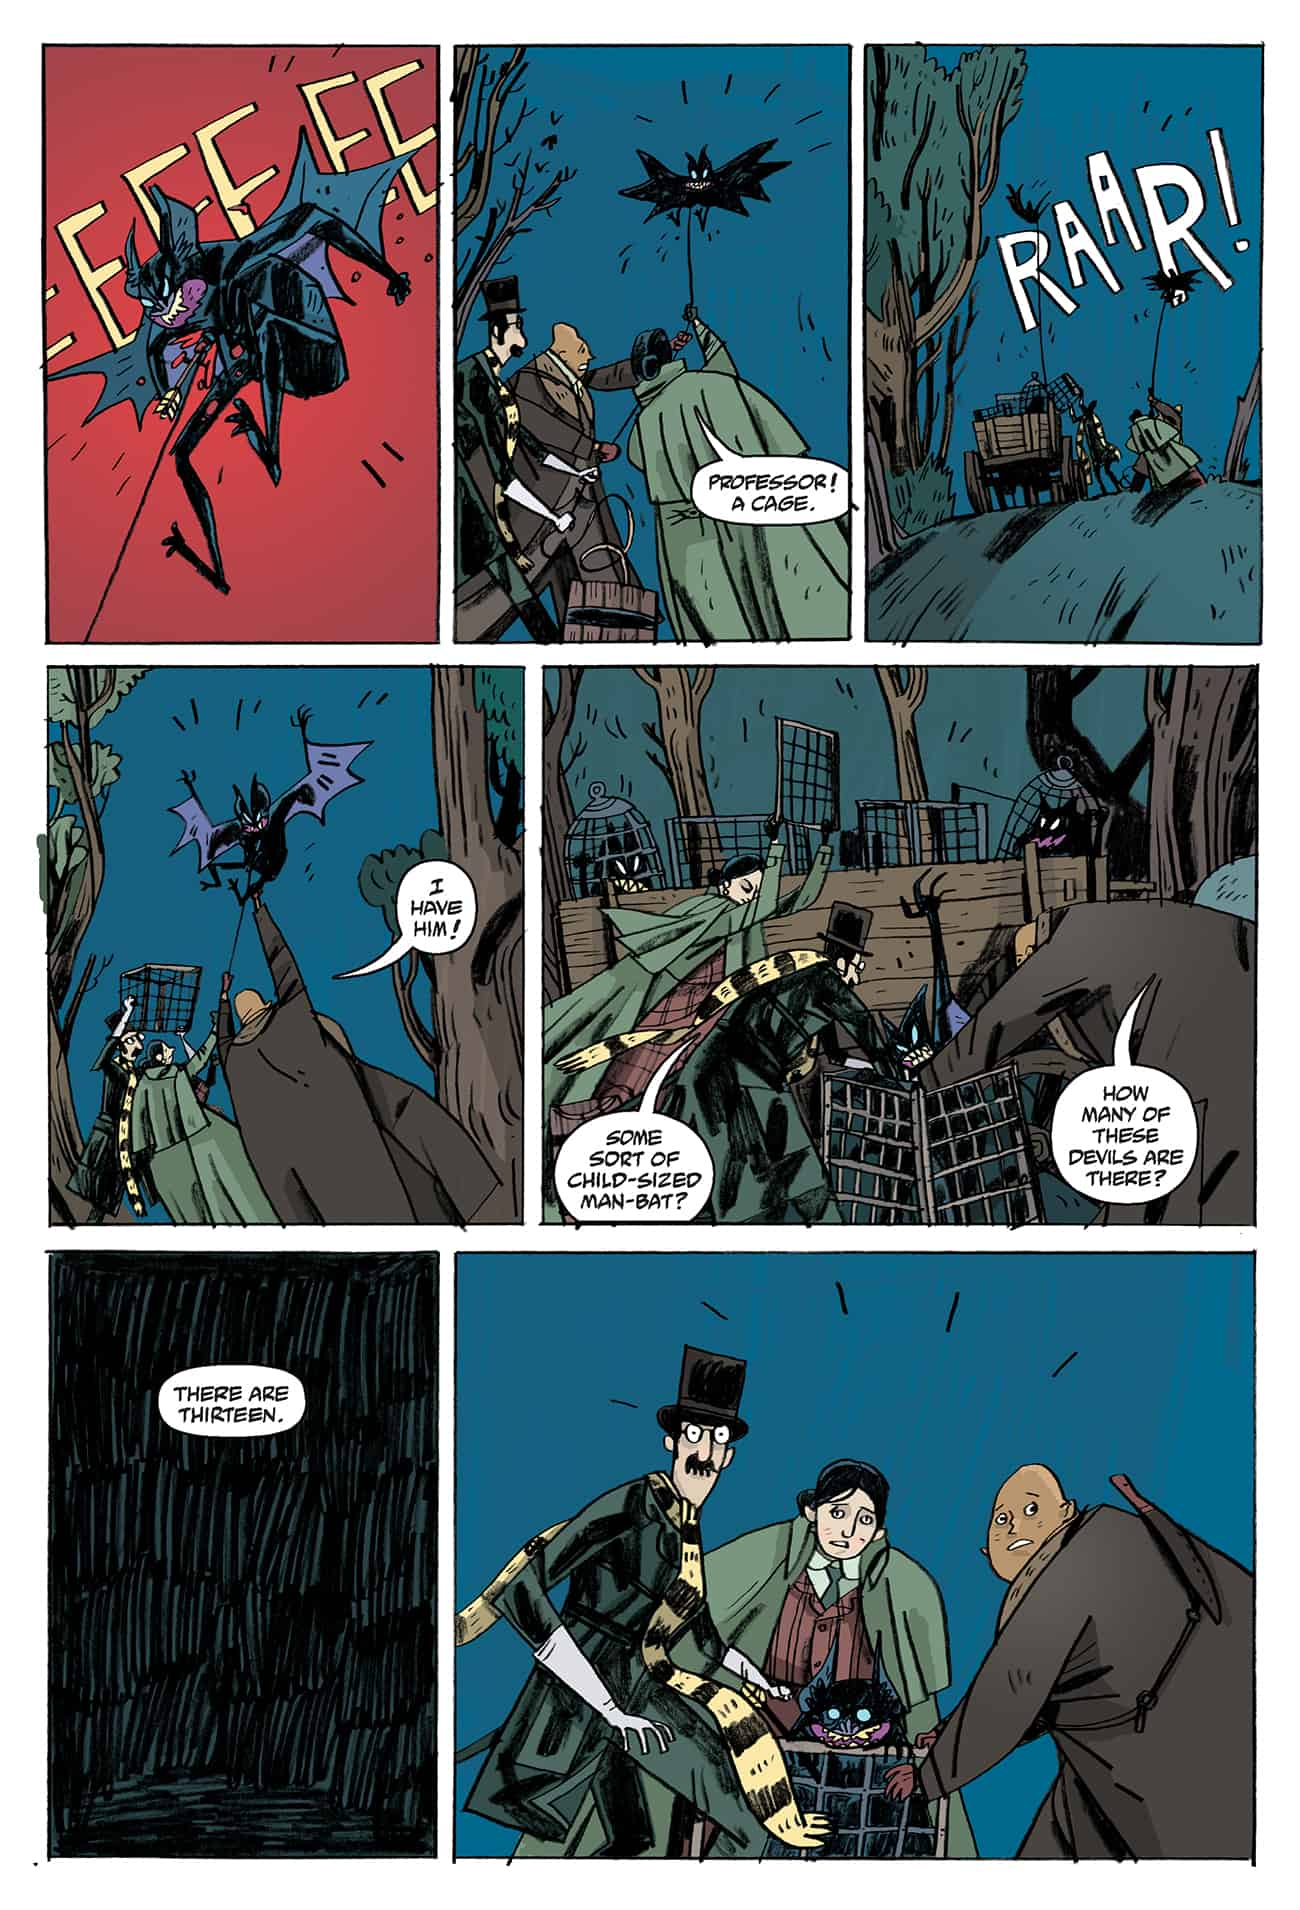 OEWE BLACKWATER PG 07 - Exclusive Preview of OUR ENCOUNTERS WITH EVIL by Mike Mignola & Warwick Johnson-Cadwell